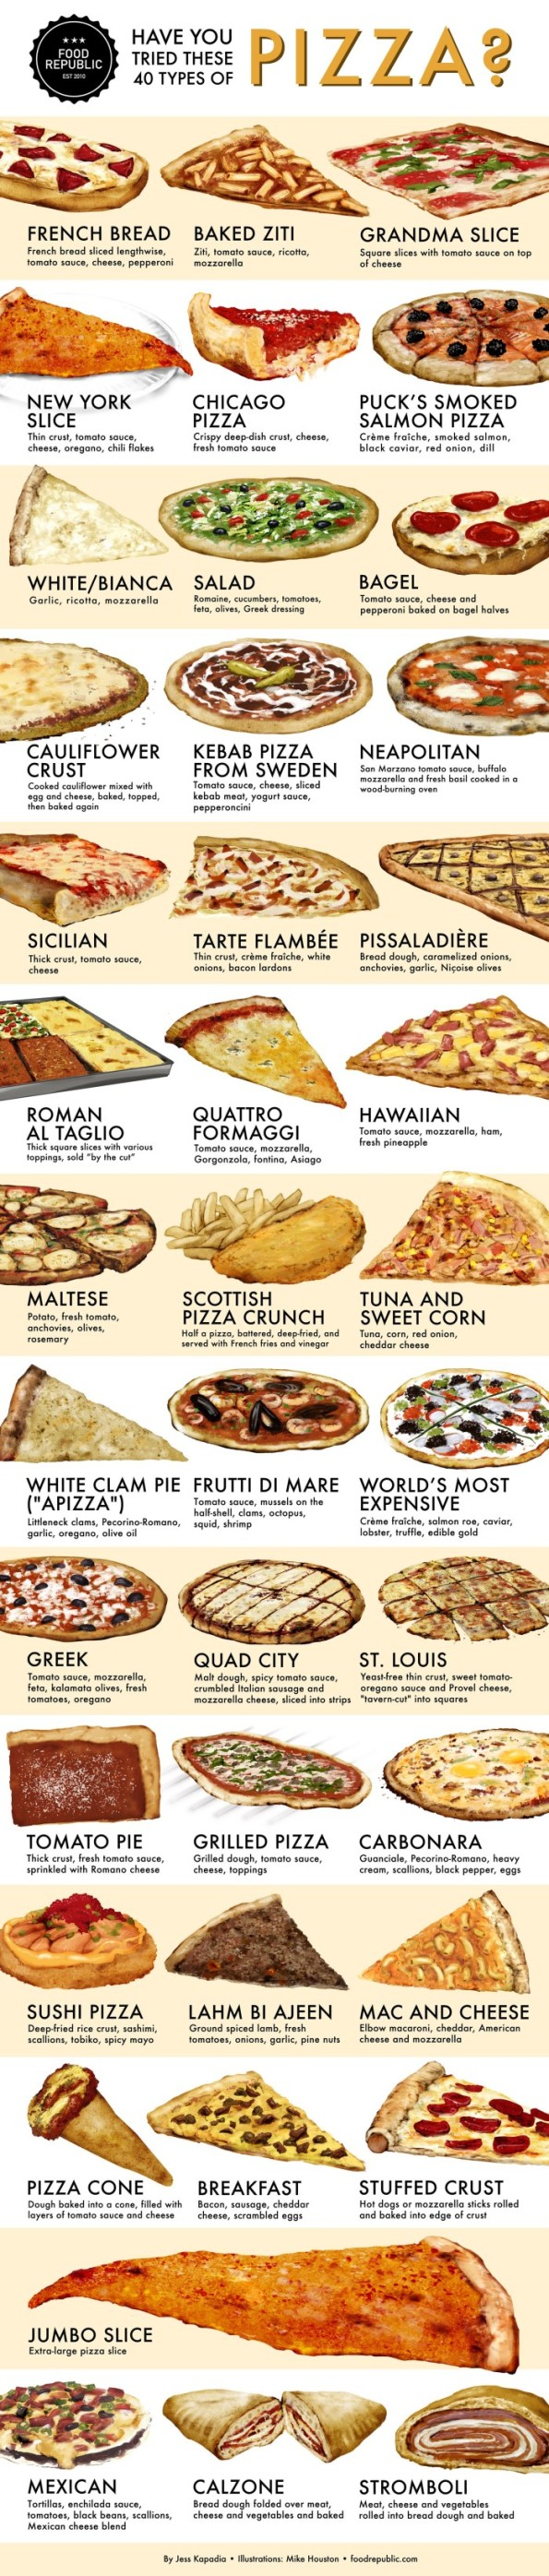 pizza-chart-medium-e1461003396177